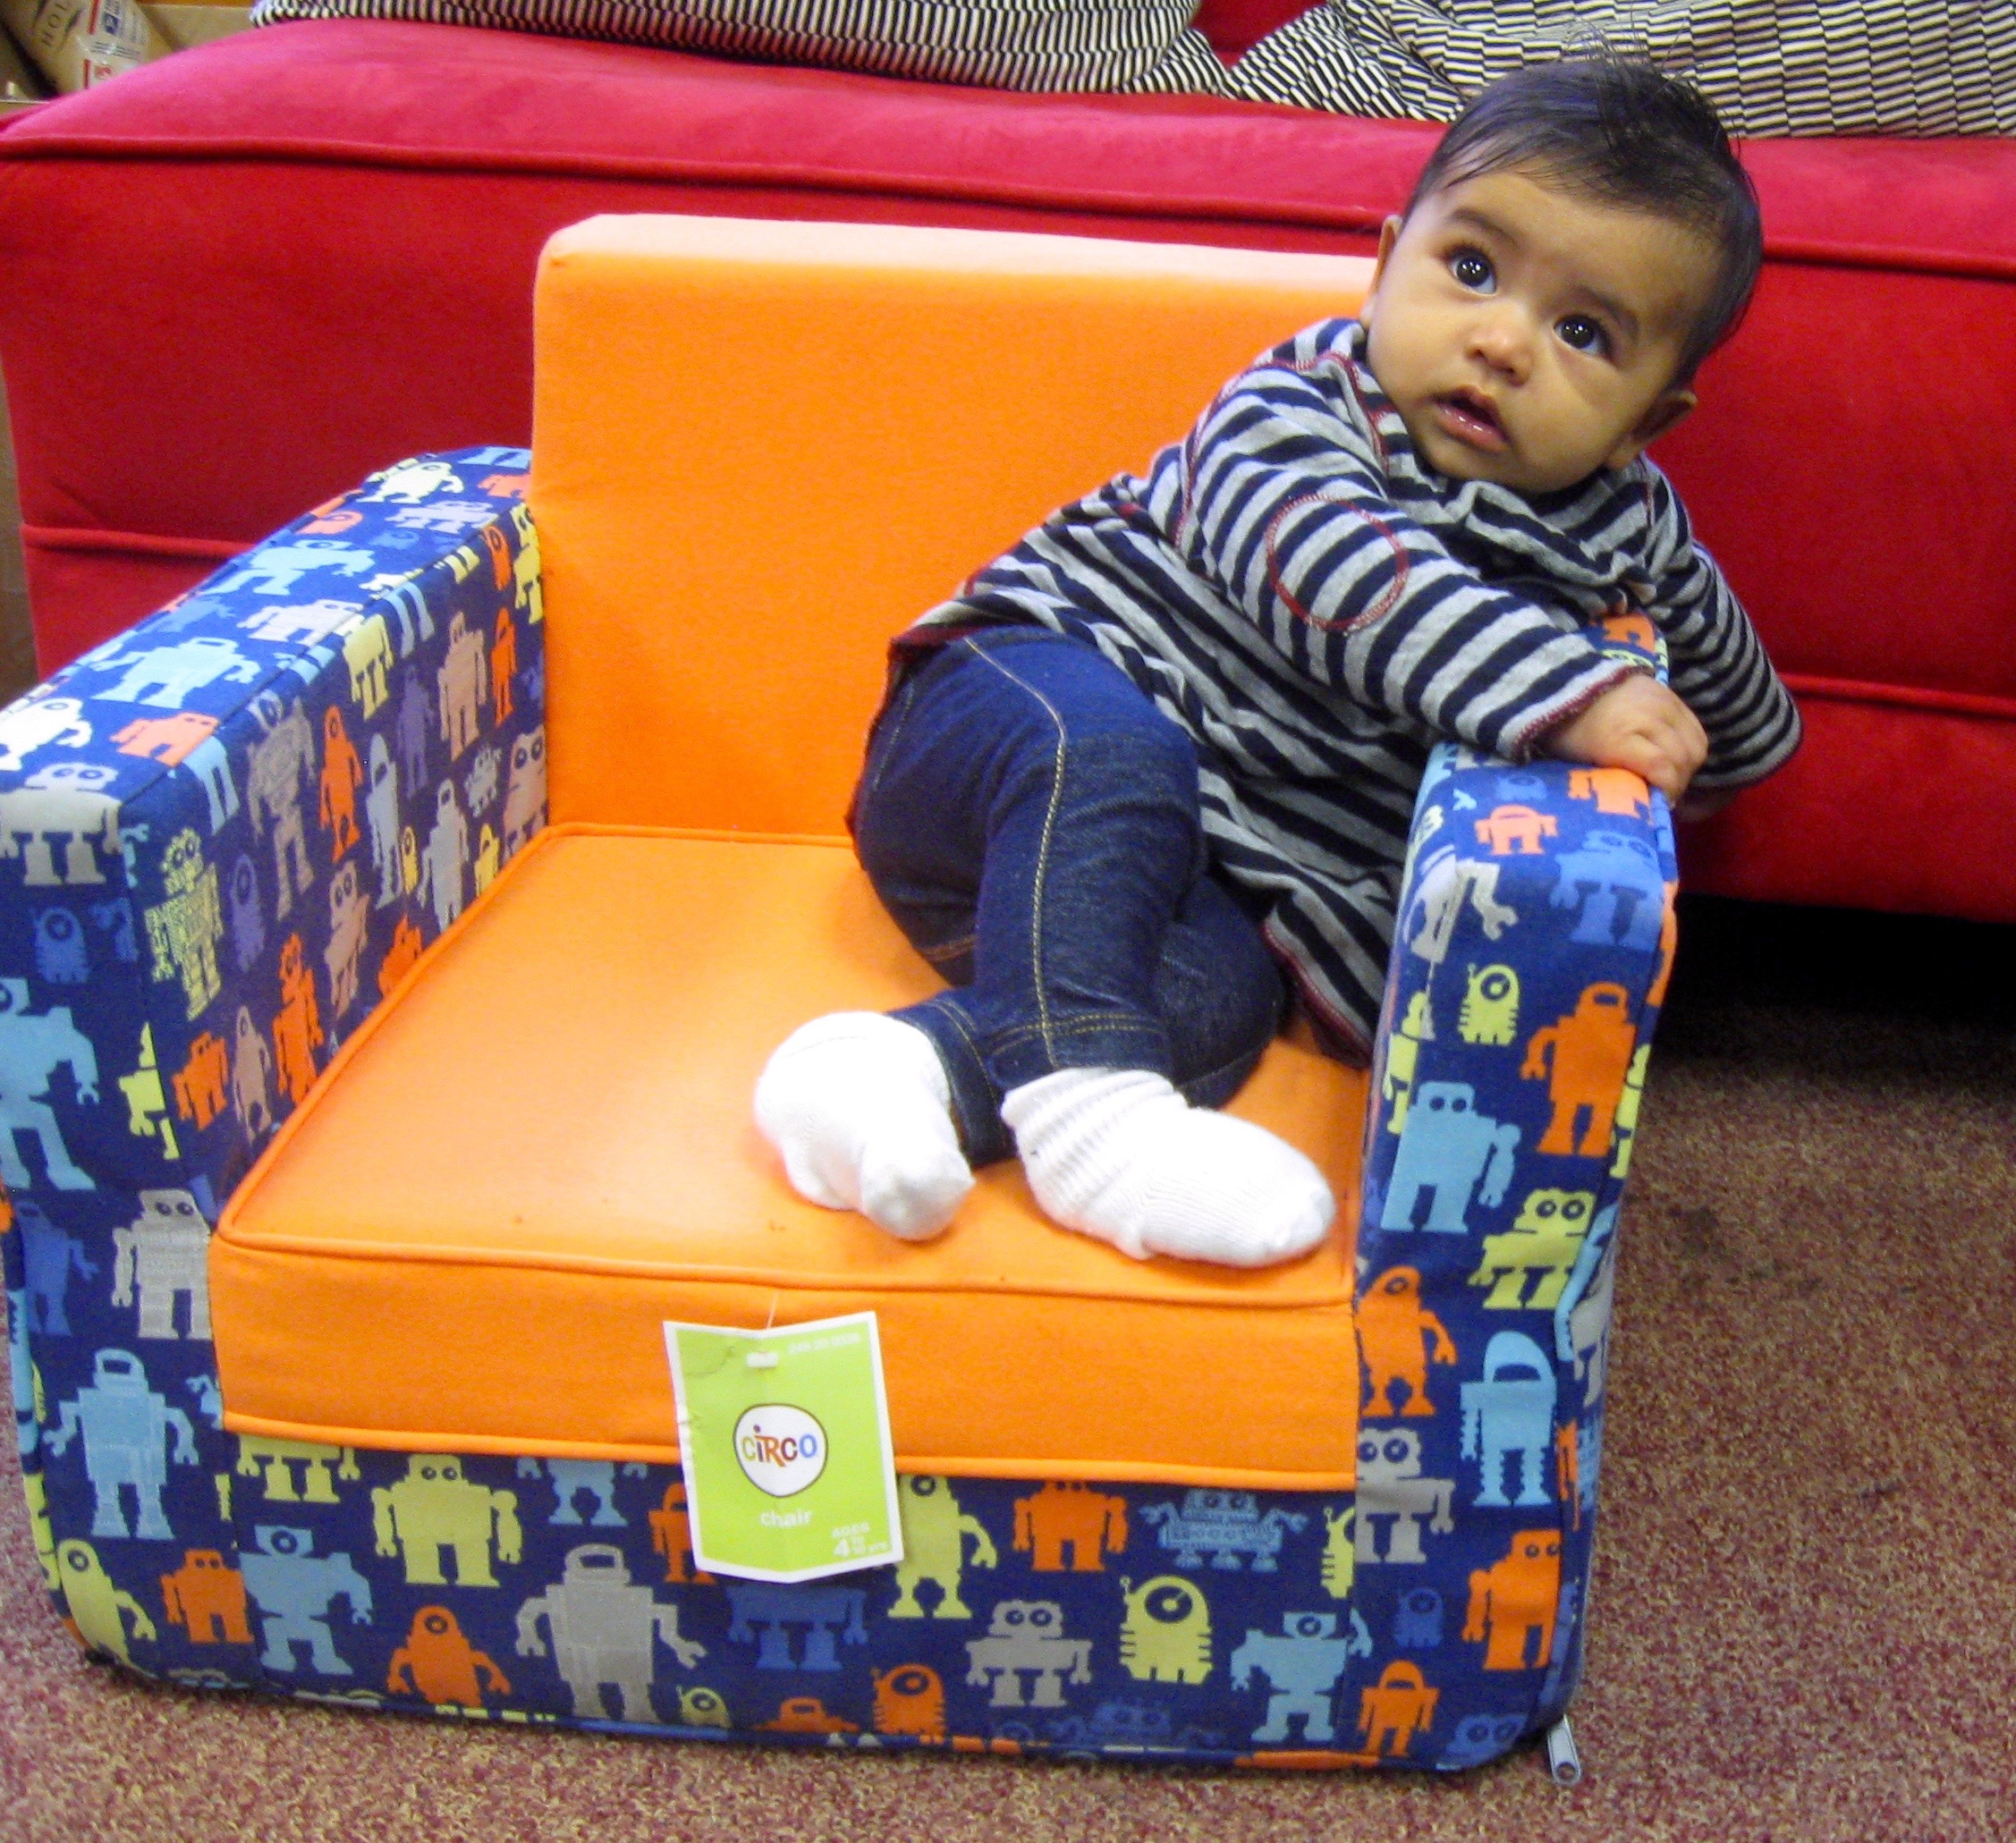 Ramona-chair-2013-crop.jpg